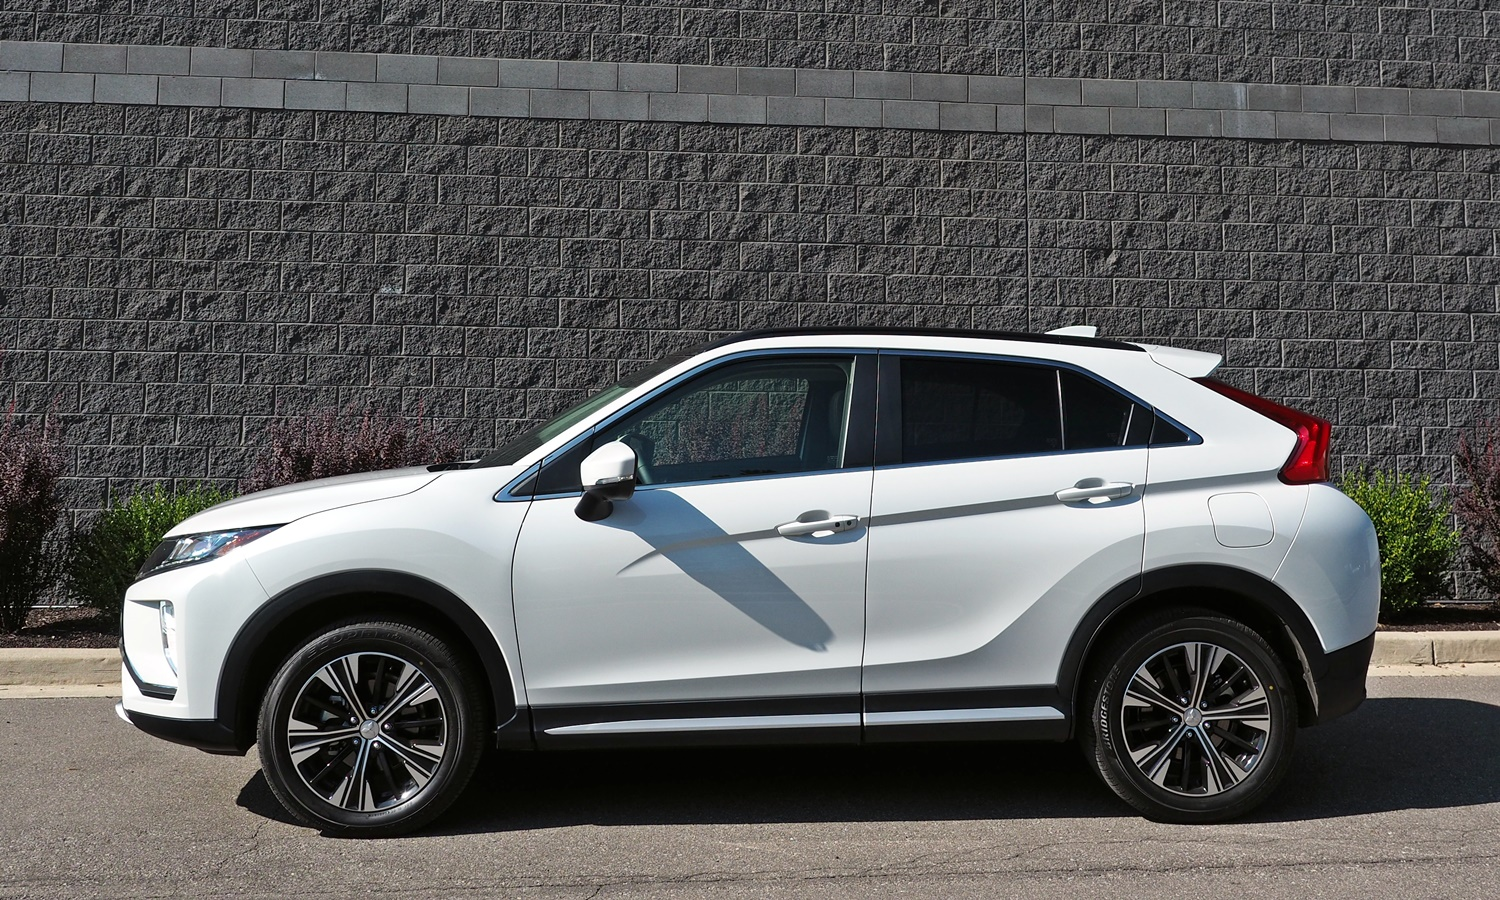 Mitsubishi Eclipse Cross Photos: 2018 Mitsubishi Eclipse Cross side view